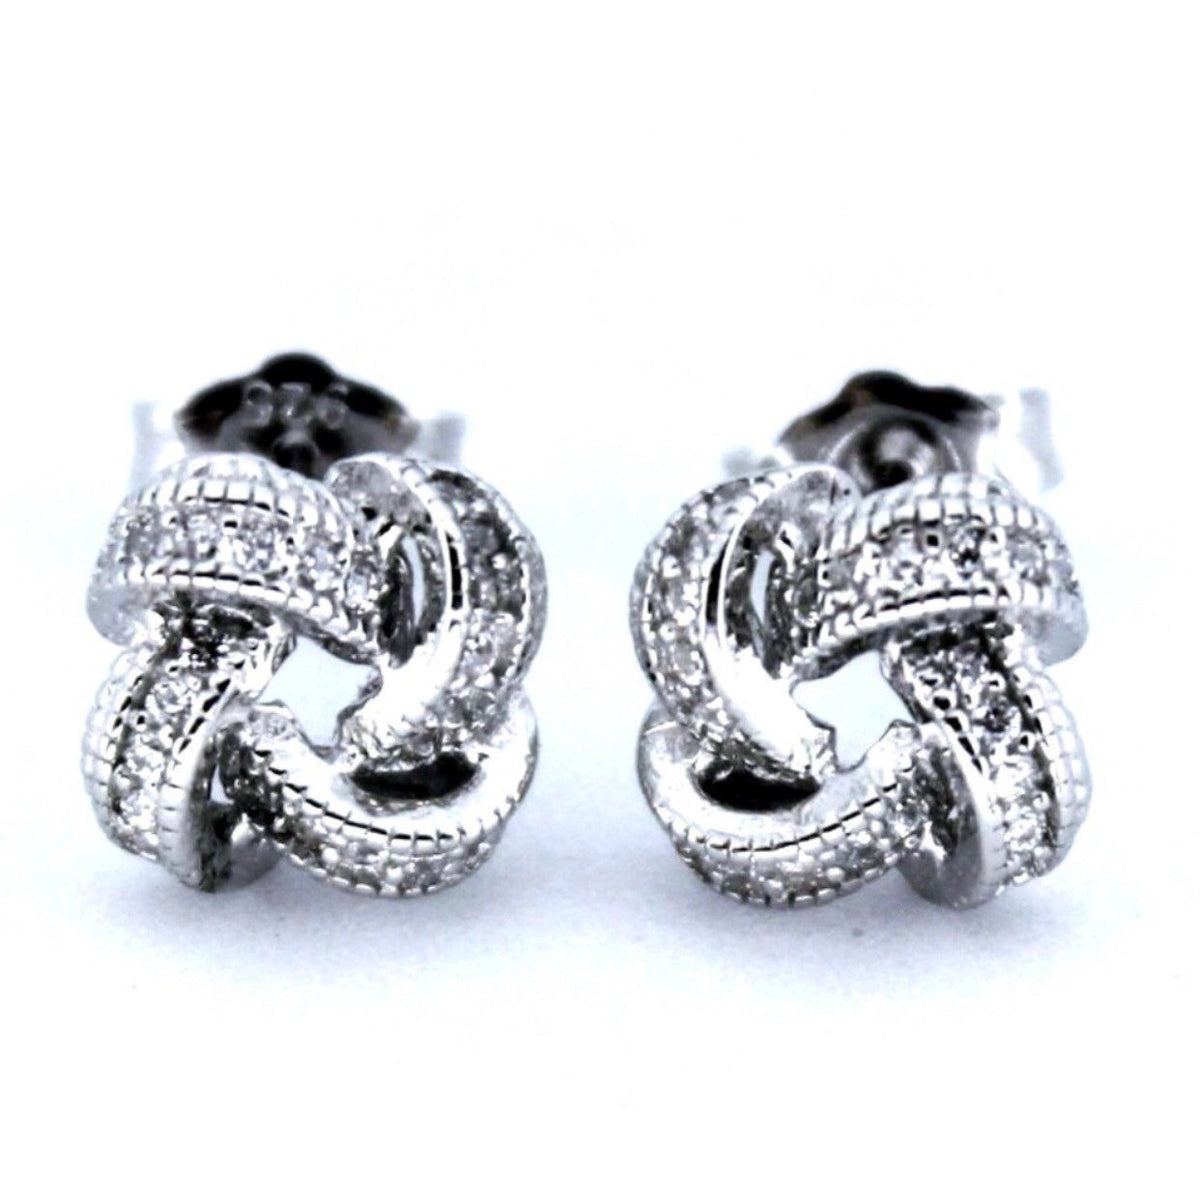 Small 14K White Gold on Sterling Silver Knot Earrings